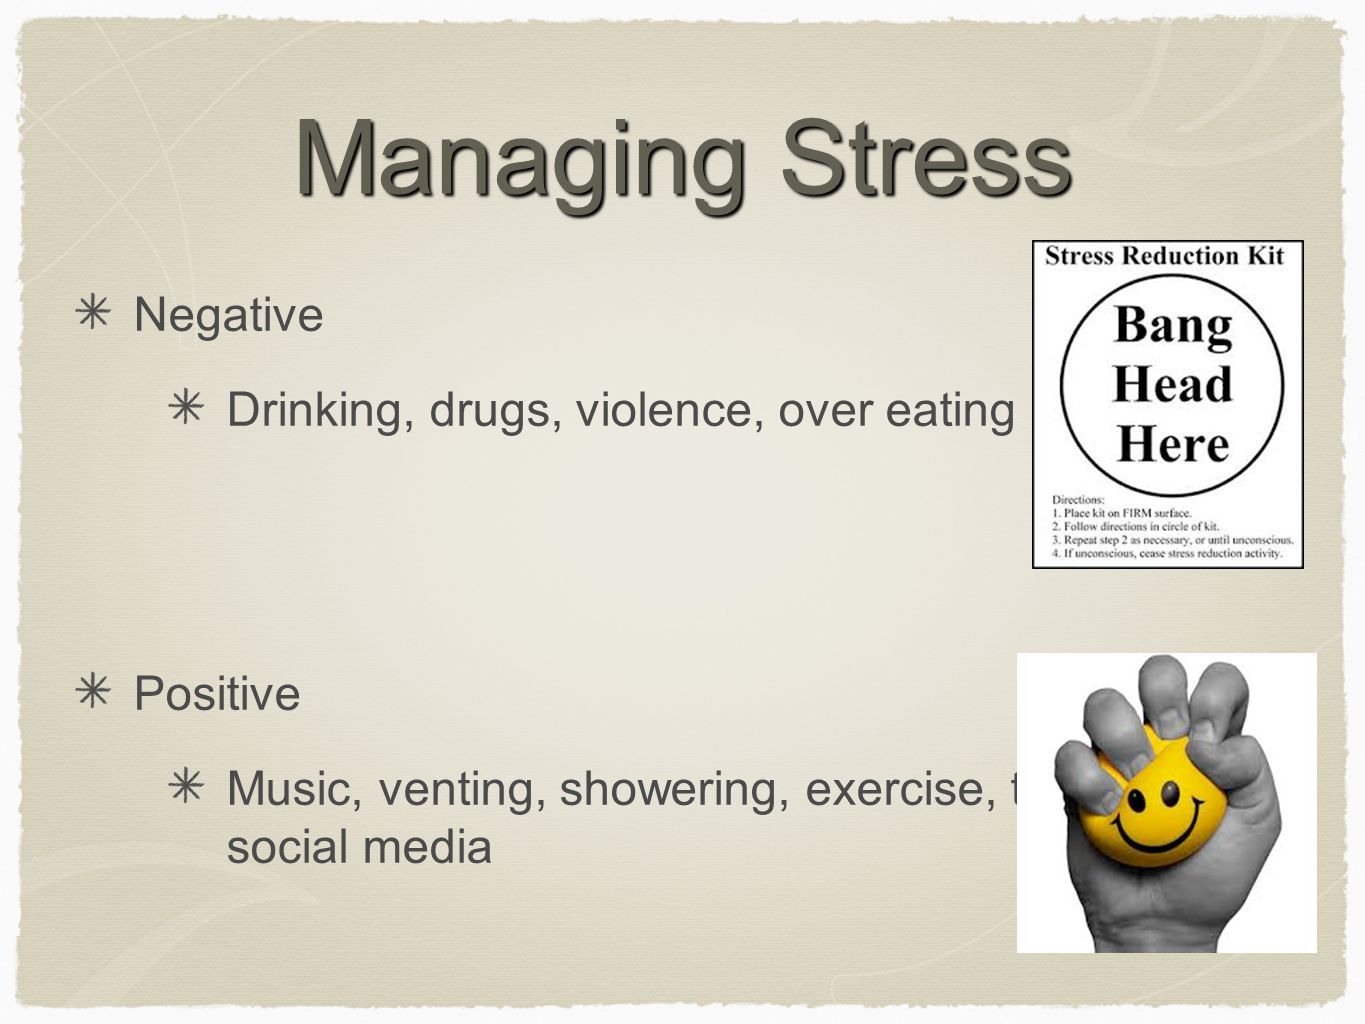 Managing Stress Negative Drinking, drugs, violence, over eating Positive Music, venting, showering, exercise, tv, social media